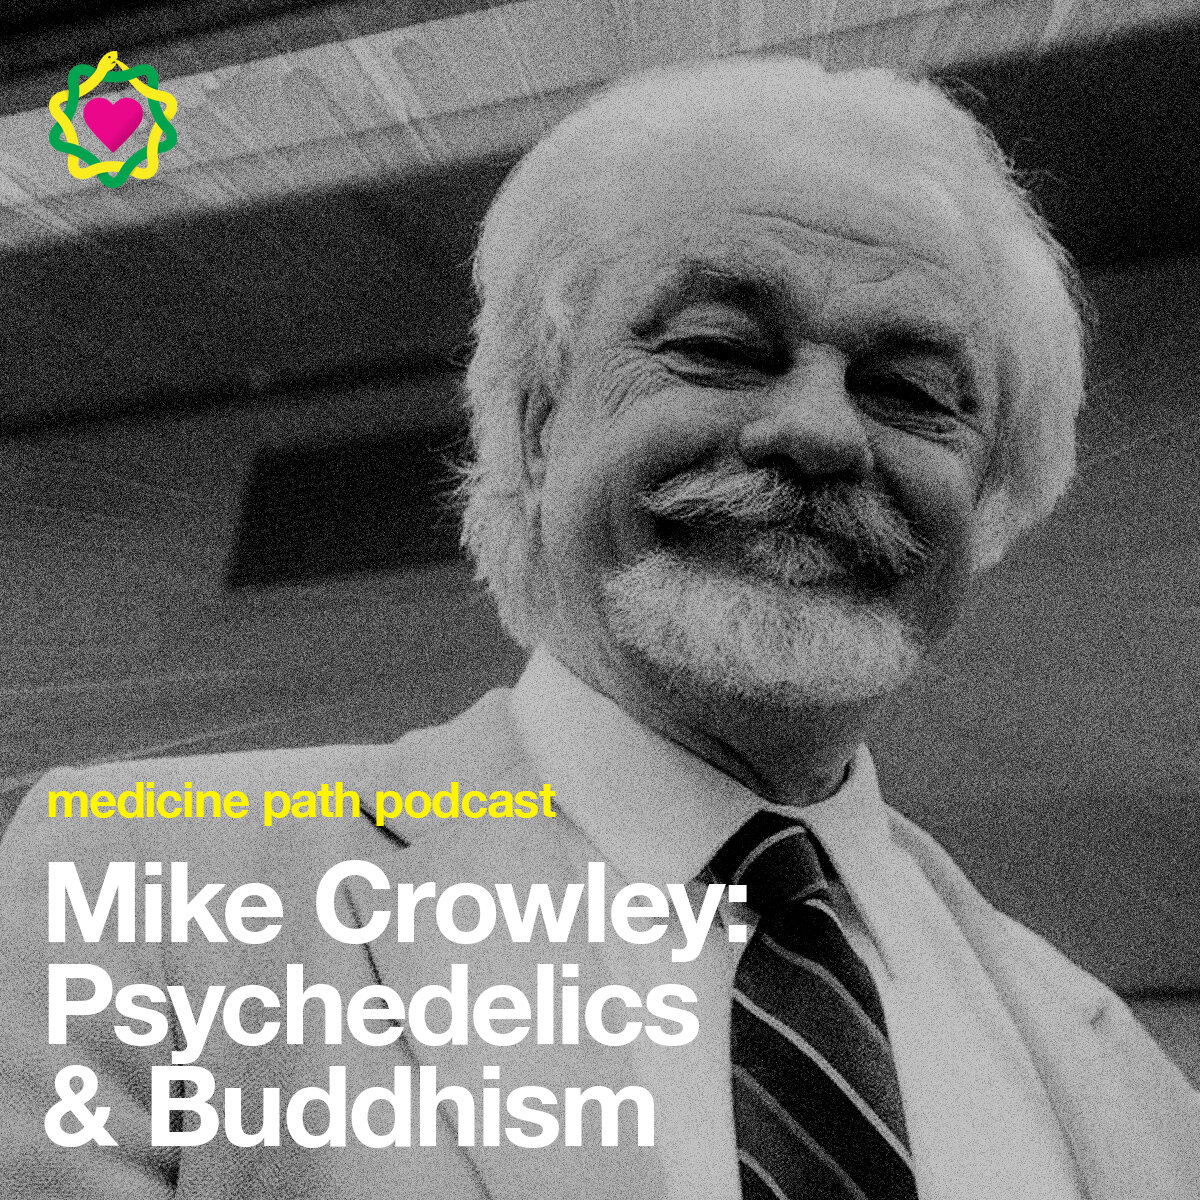 MPP73 Mike Crowley: Psychedelics & Buddhism